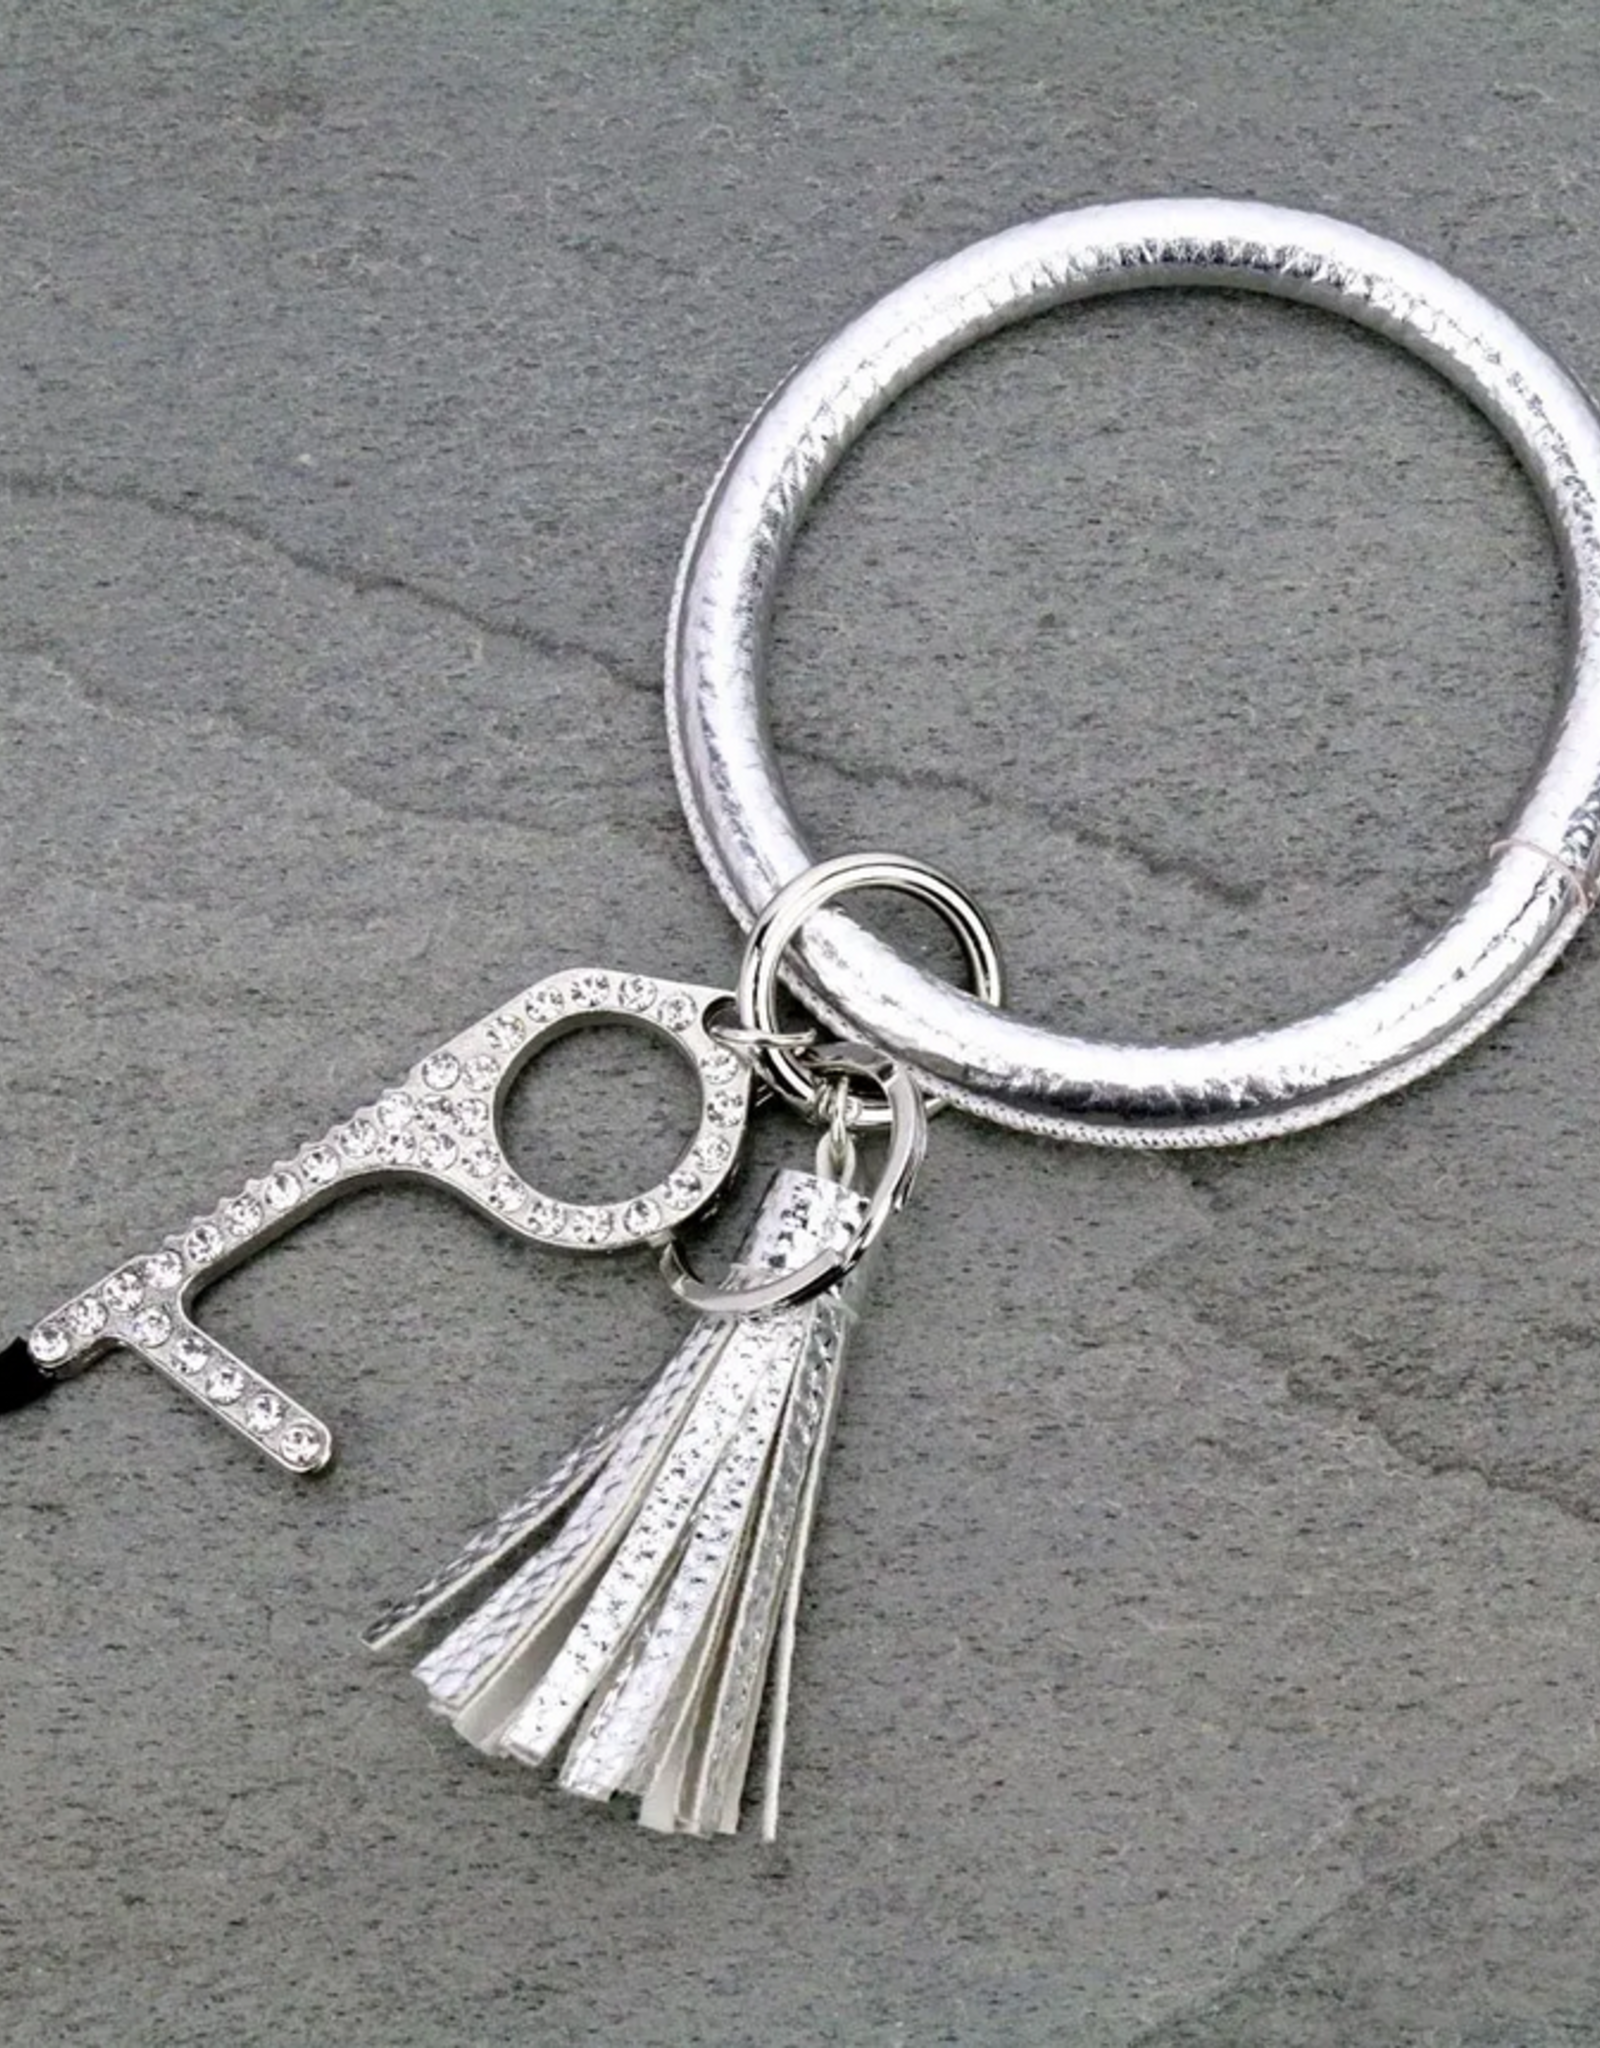 BANGLE KEY RING SILVER CONTACTLESS WITH DOOR OPENER SAFETY KEY